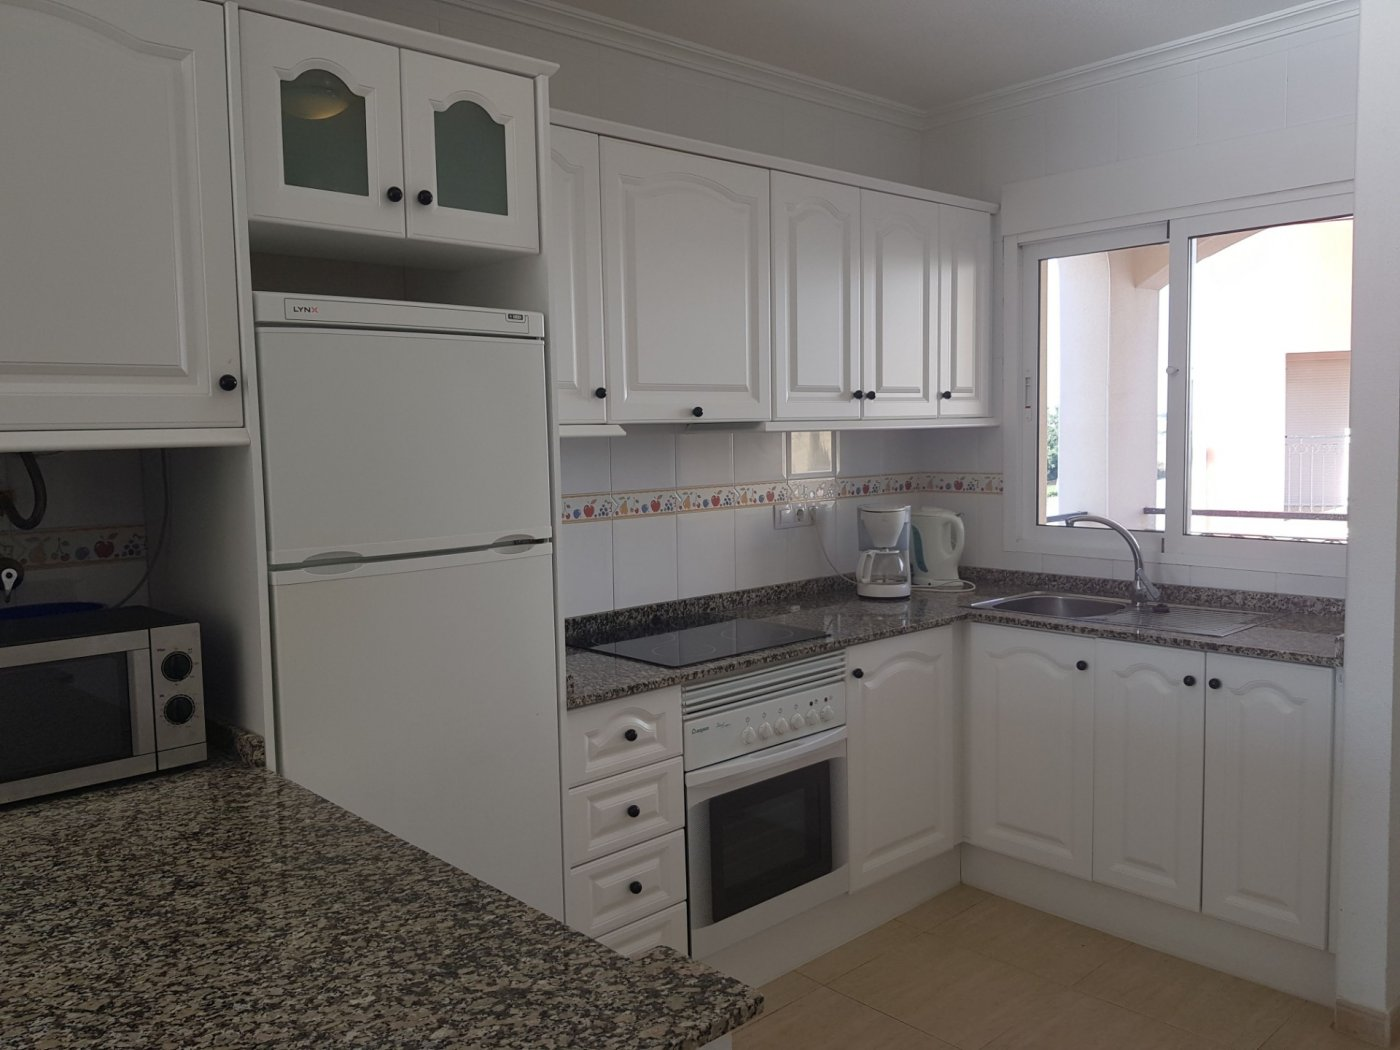 Image 5 Apartment ref 3265-03205 for sale in San Blas Spain - Quality Homes Costa Cálida